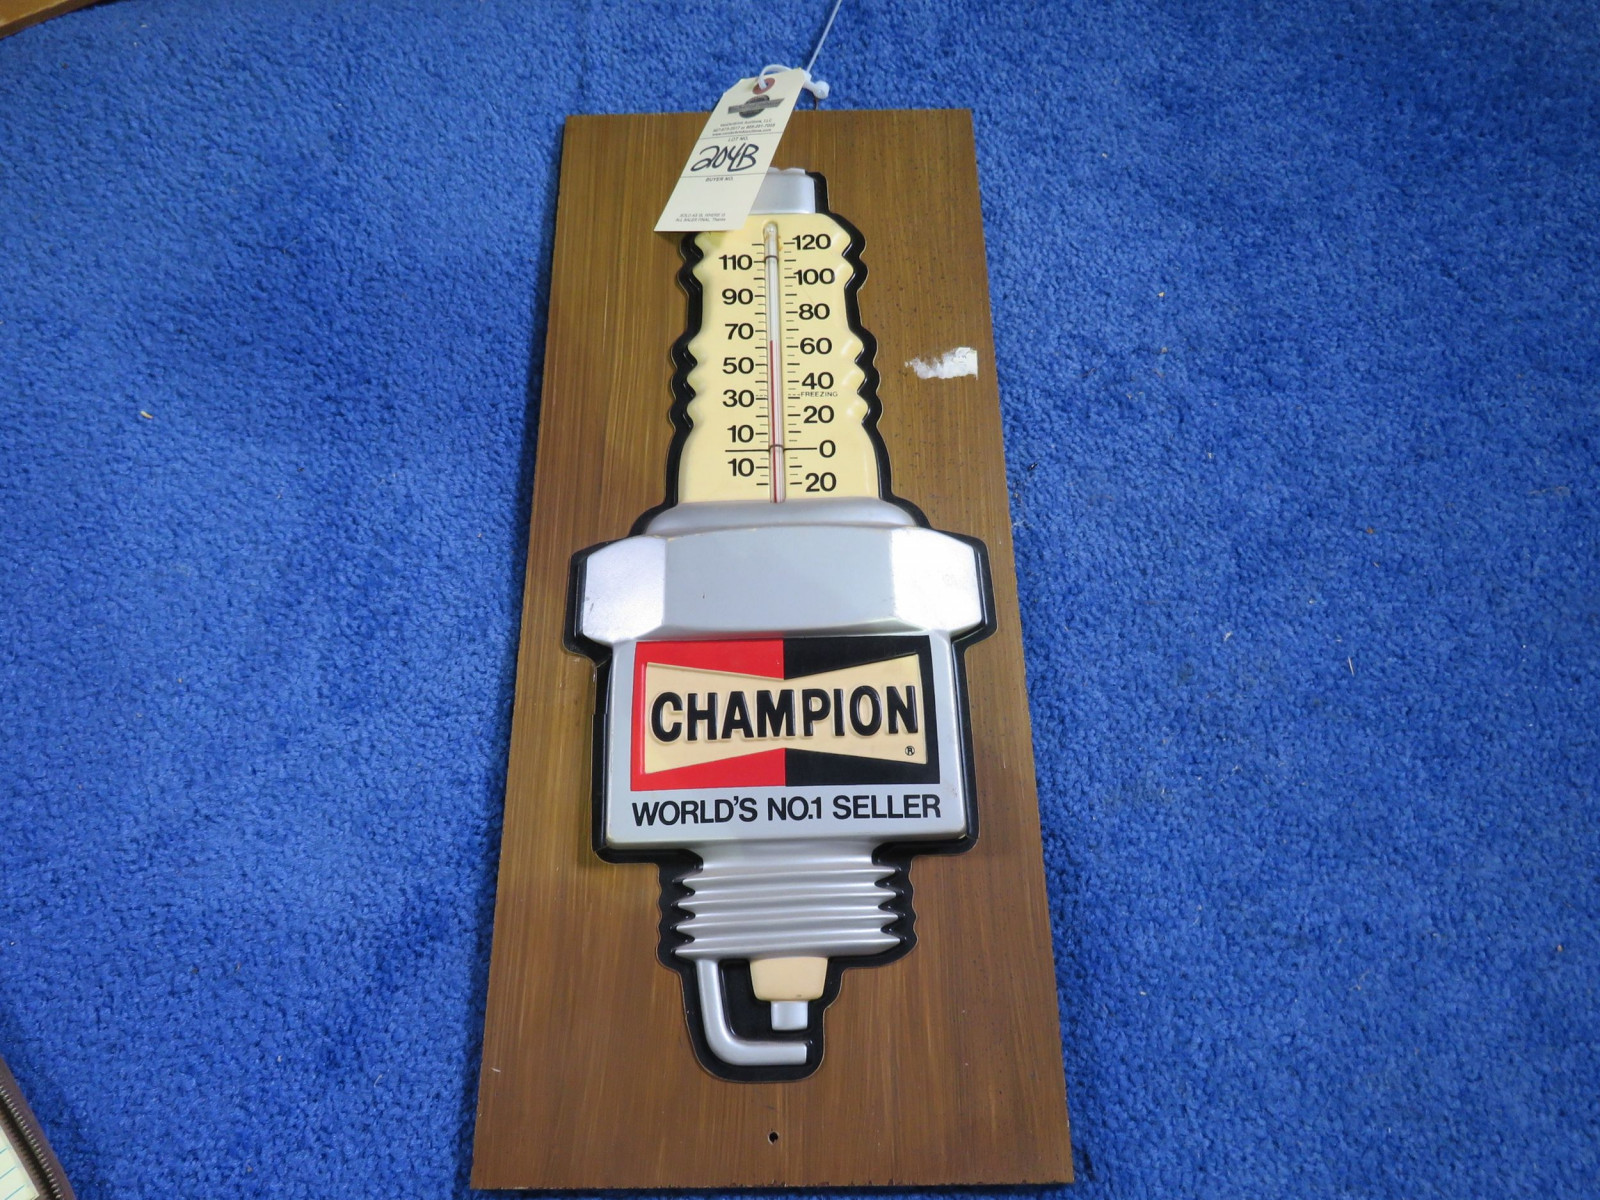 Champion Sparkplugs Thermometer - Image 1